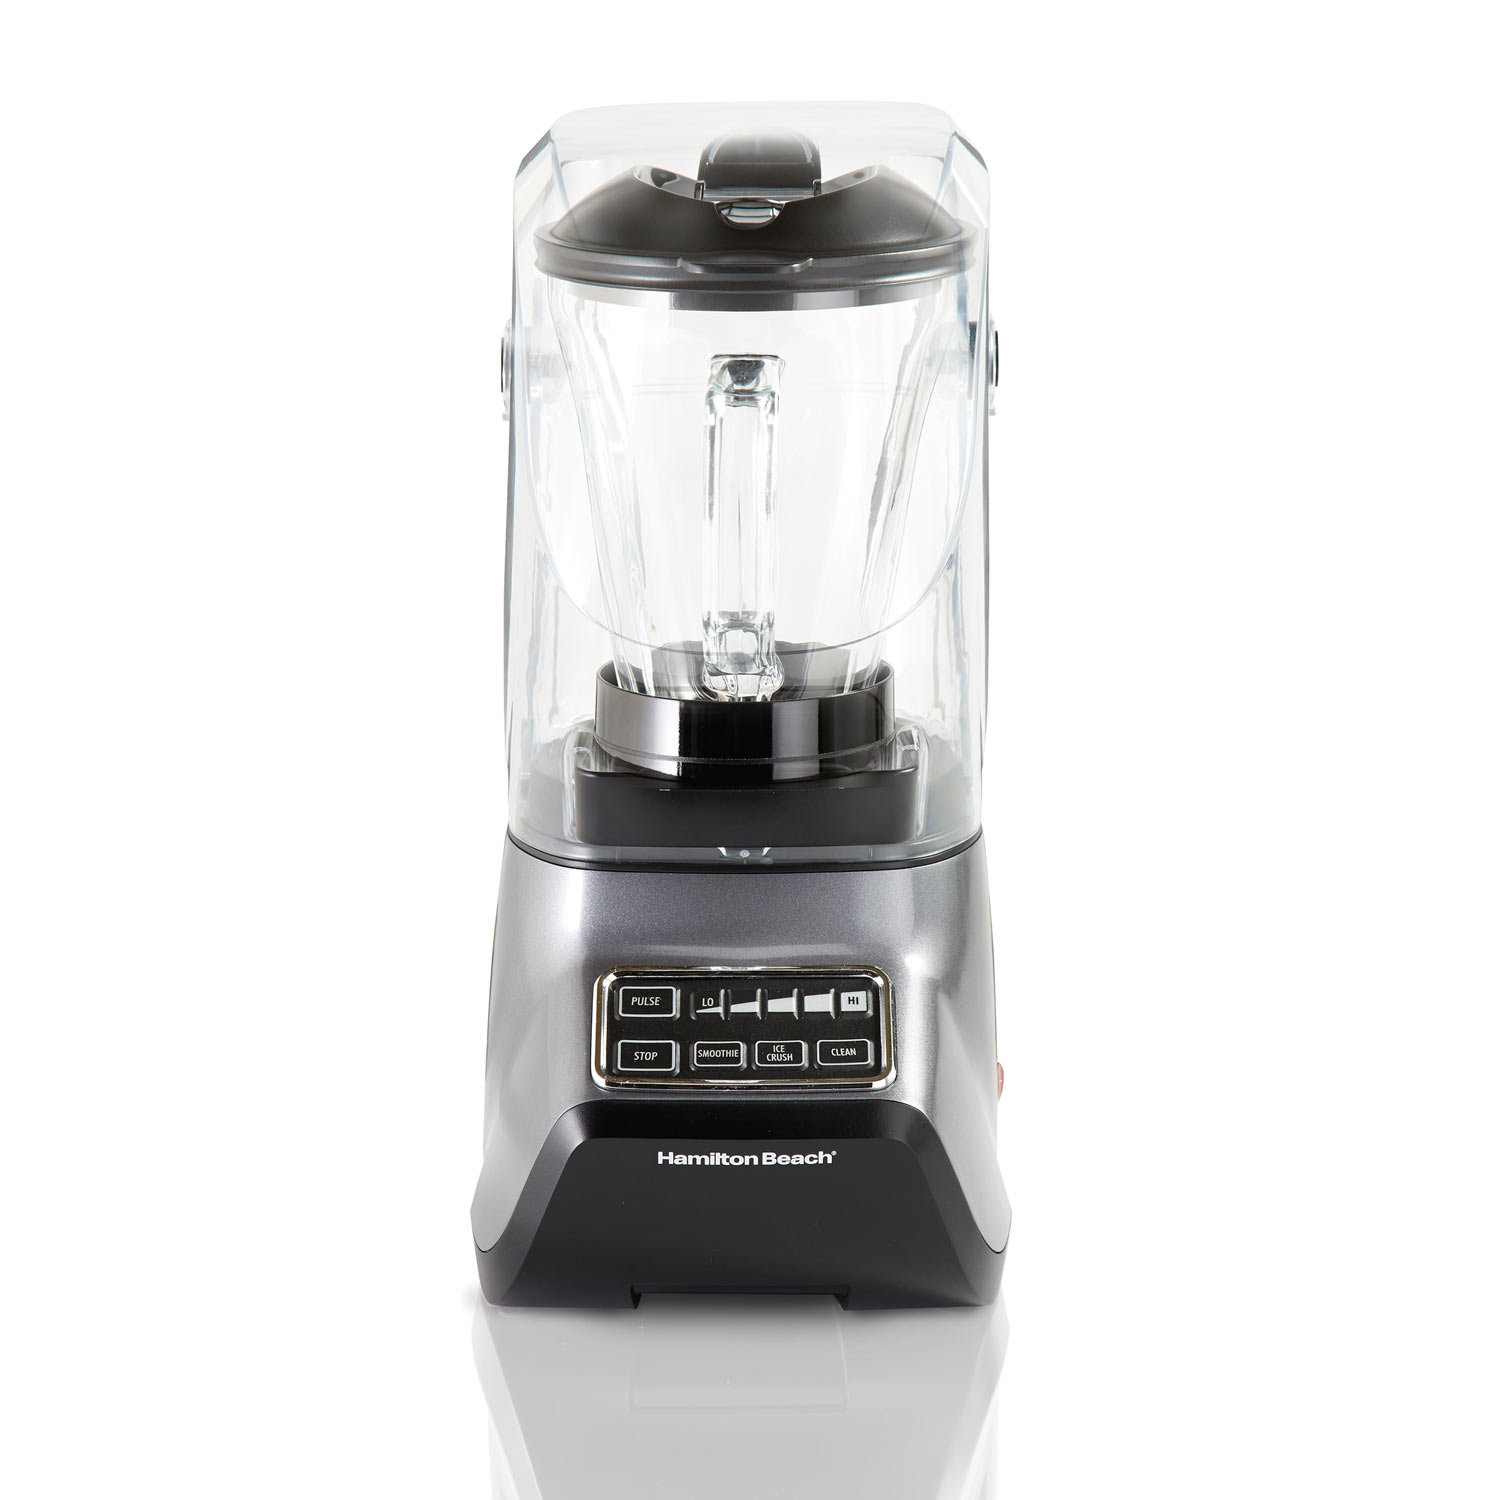 53602 Sound Shield 950 is similar to commercial quiet blenders with a two-piece sound shield reduces noise while blending.